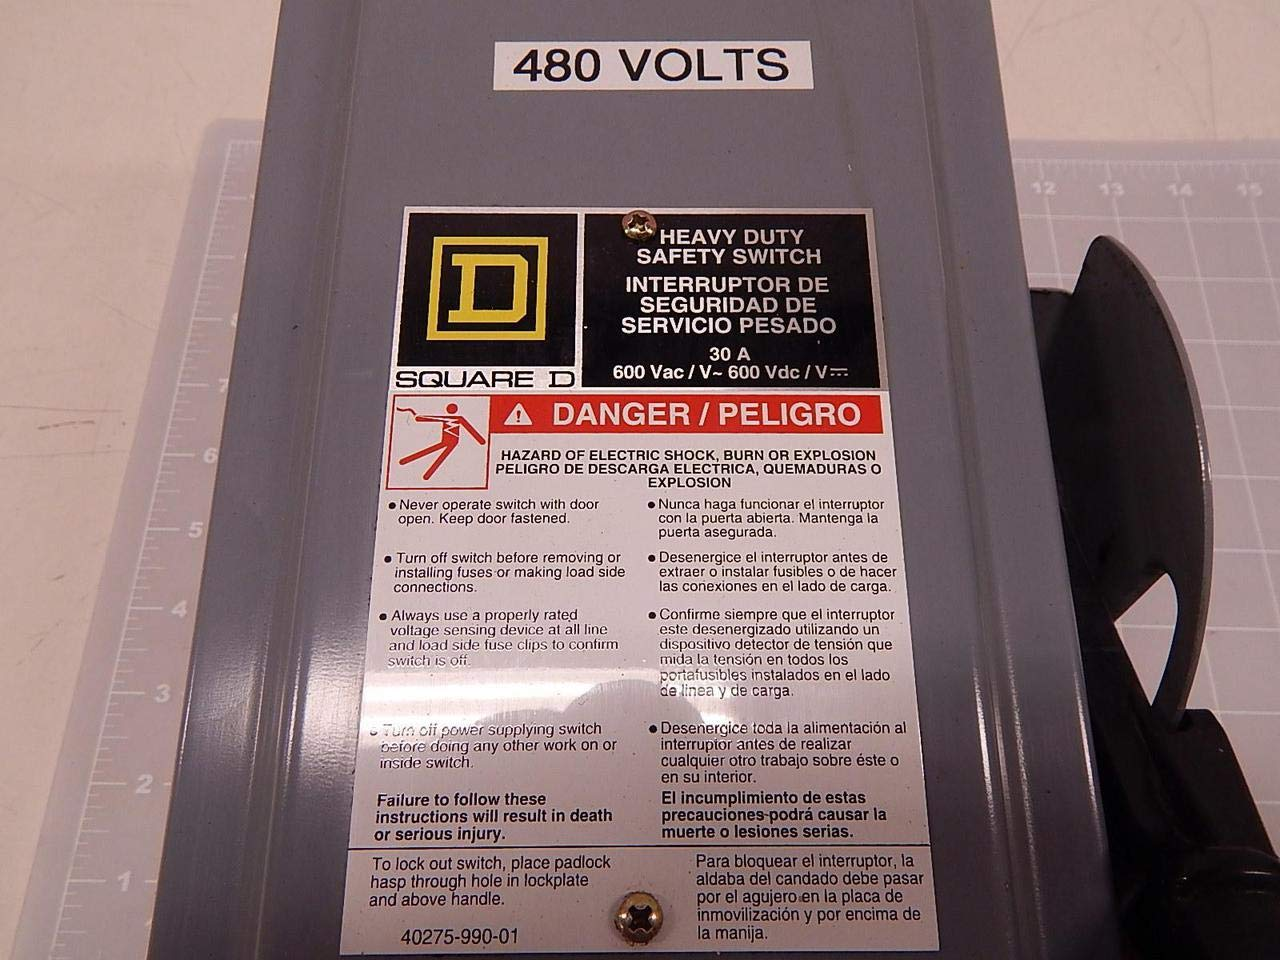 Square D HU361, 40275-990-01 Heavy Duty Safety Switch T83840: Amazon.com: Industrial & Scientific